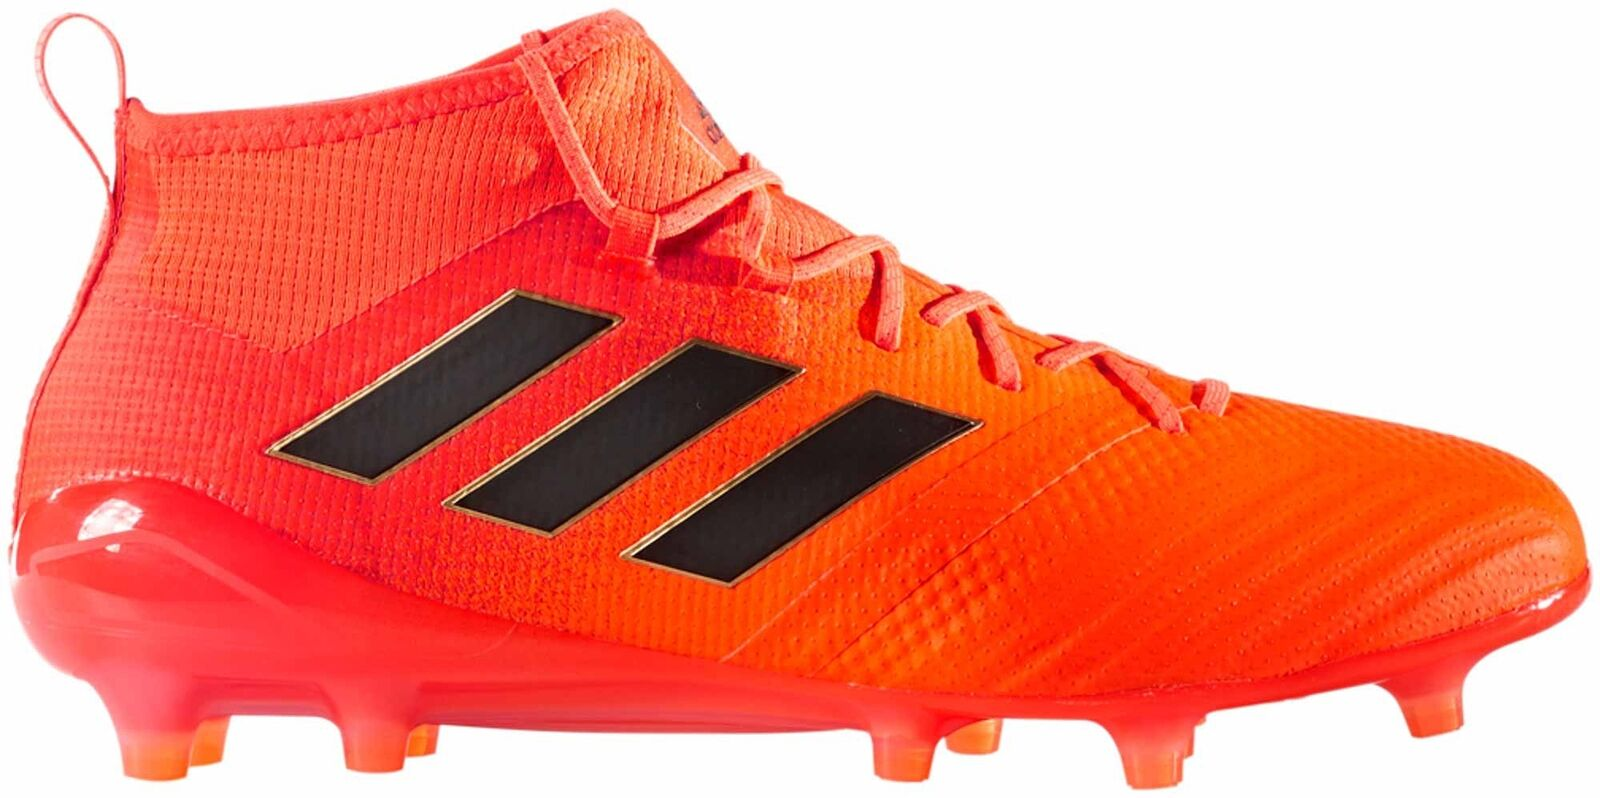 Adidas Ace 17.1 Mens Firm Ground Football stivali - - - arancia Dimensione 6 to 12 671cd6